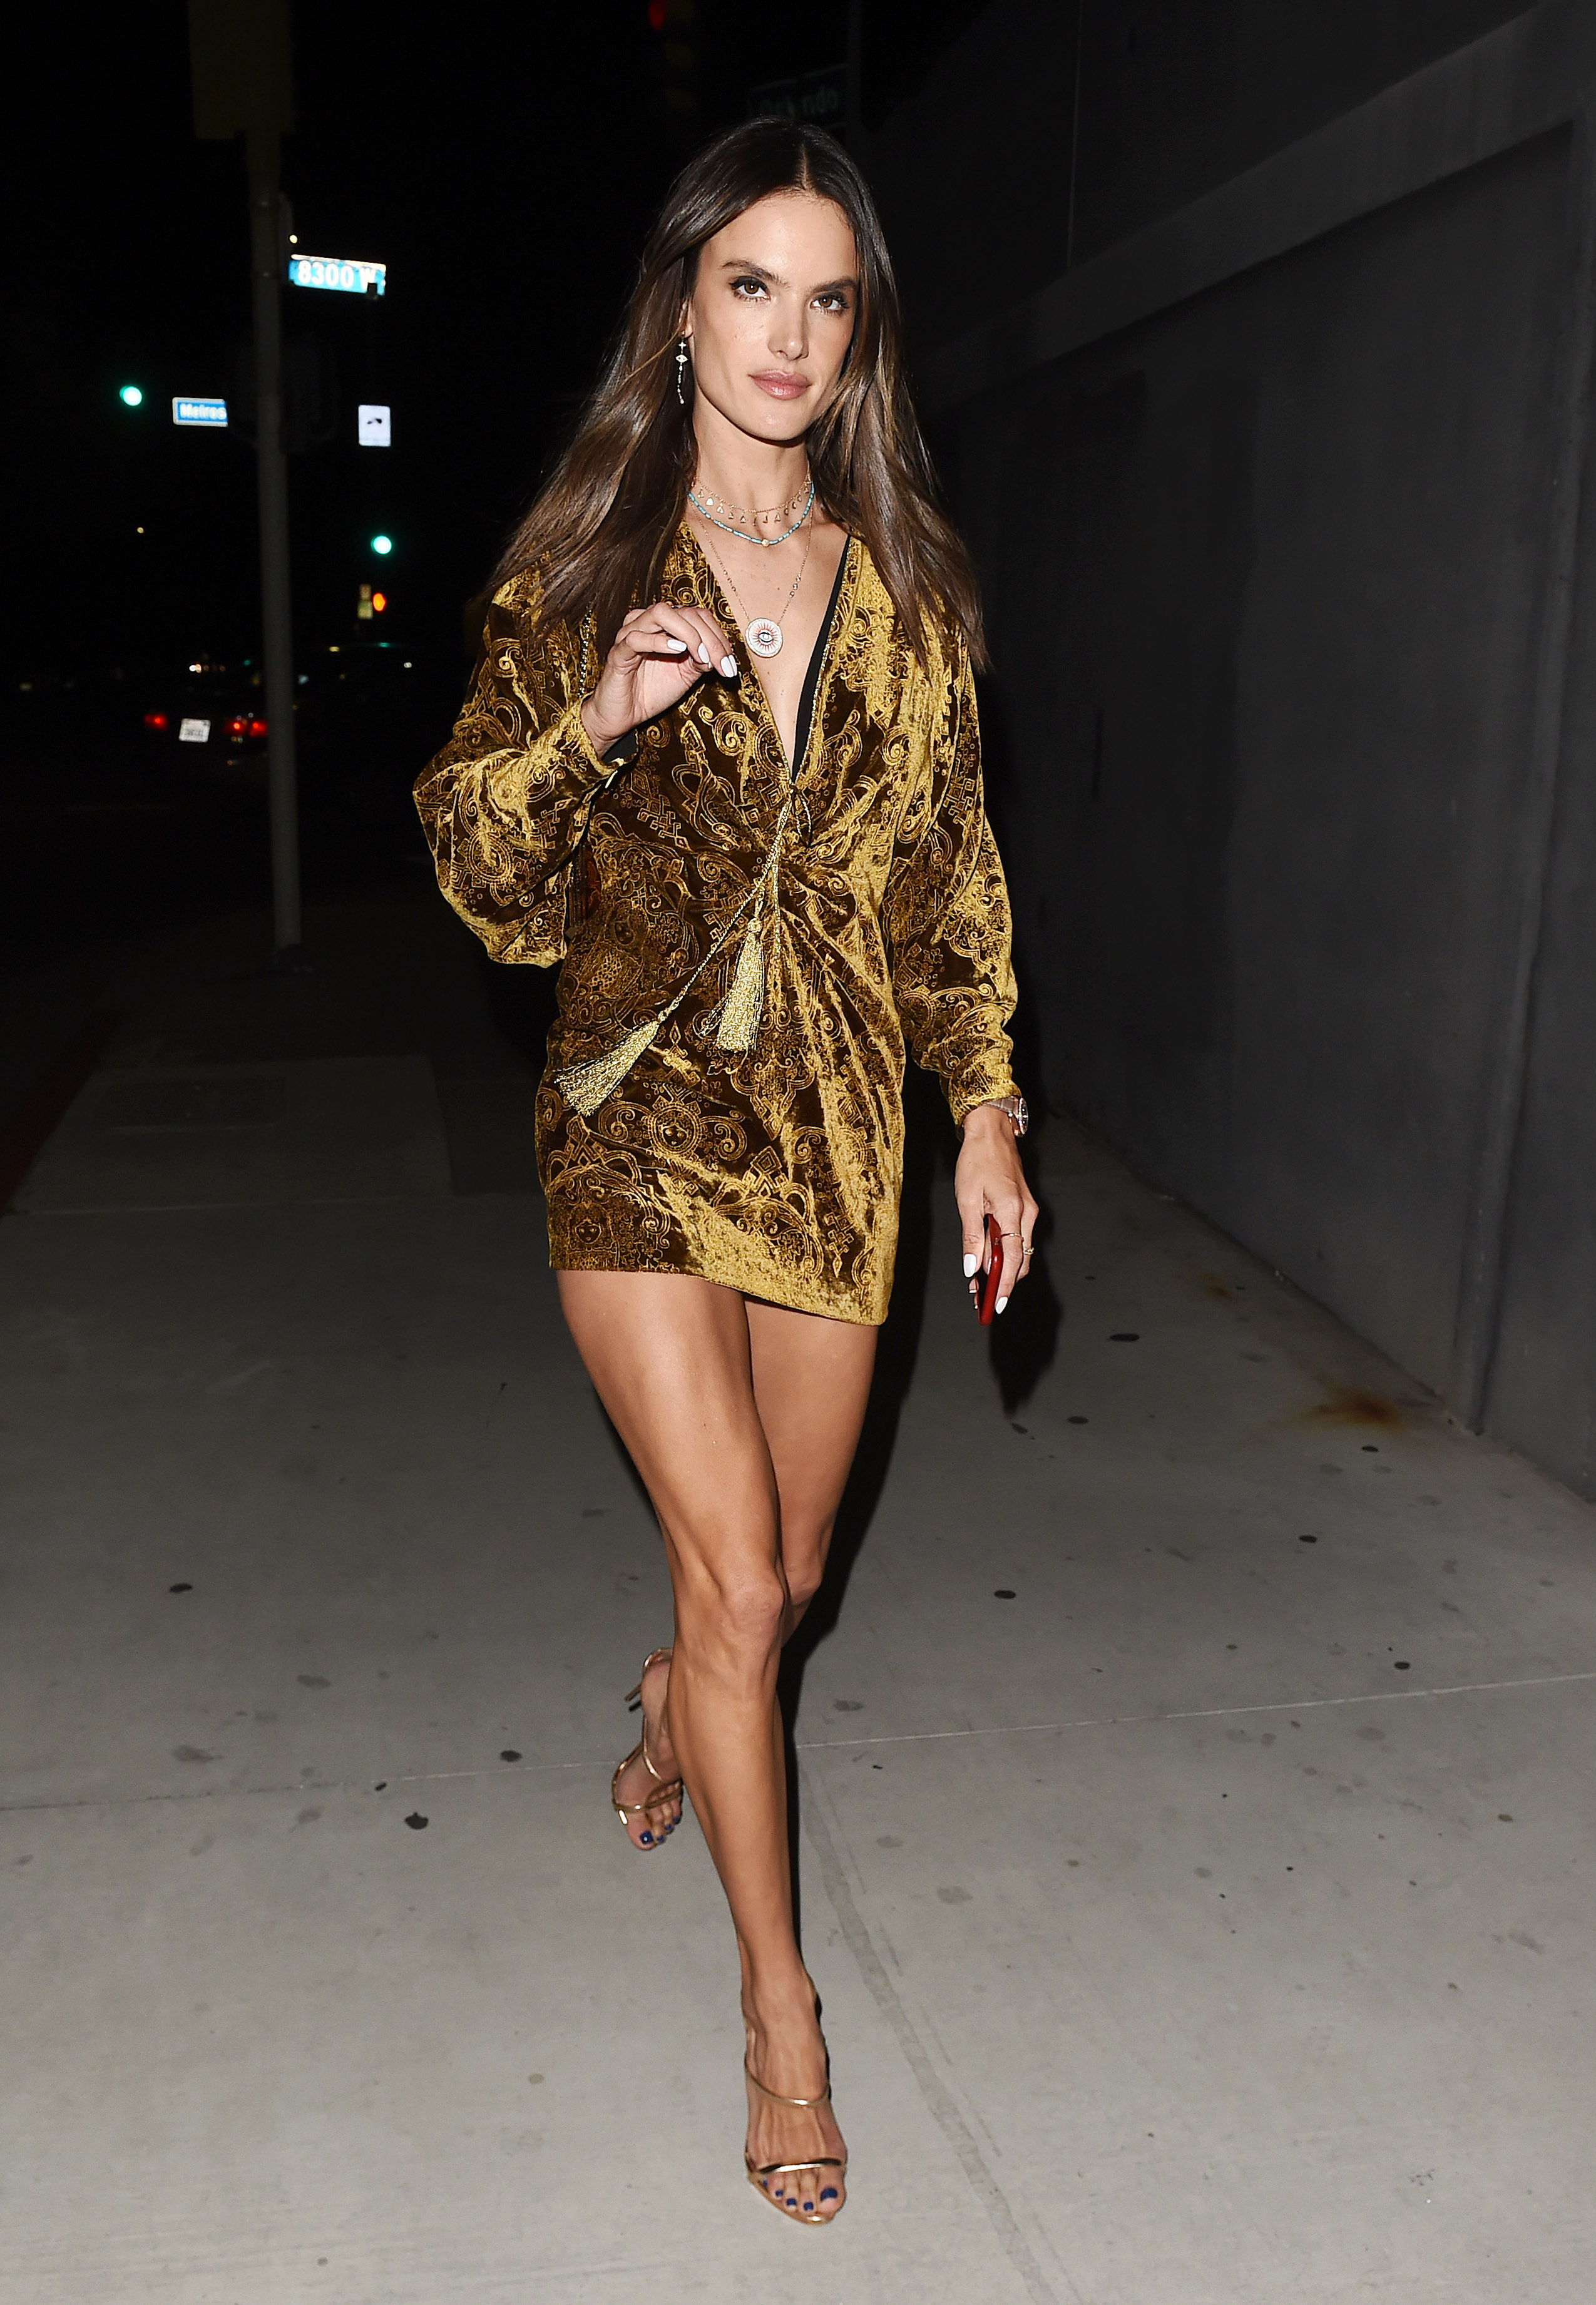 Alessandra Ambrosio Leaving DUNDAS Traveling Flagship cocktail party in Los Angeles <P> Pictured: Alessandra Ambrosio <B>Ref: SPL1687421  240418  </B><BR/> Picture by: SAF / Splash News<BR/> </P><P> <B>Splash News and Pictures</B><BR/> Los Angeles:310-821-2666<BR/> New York:212-619-2666<BR/> London:870-934-2666<BR/> <span id=